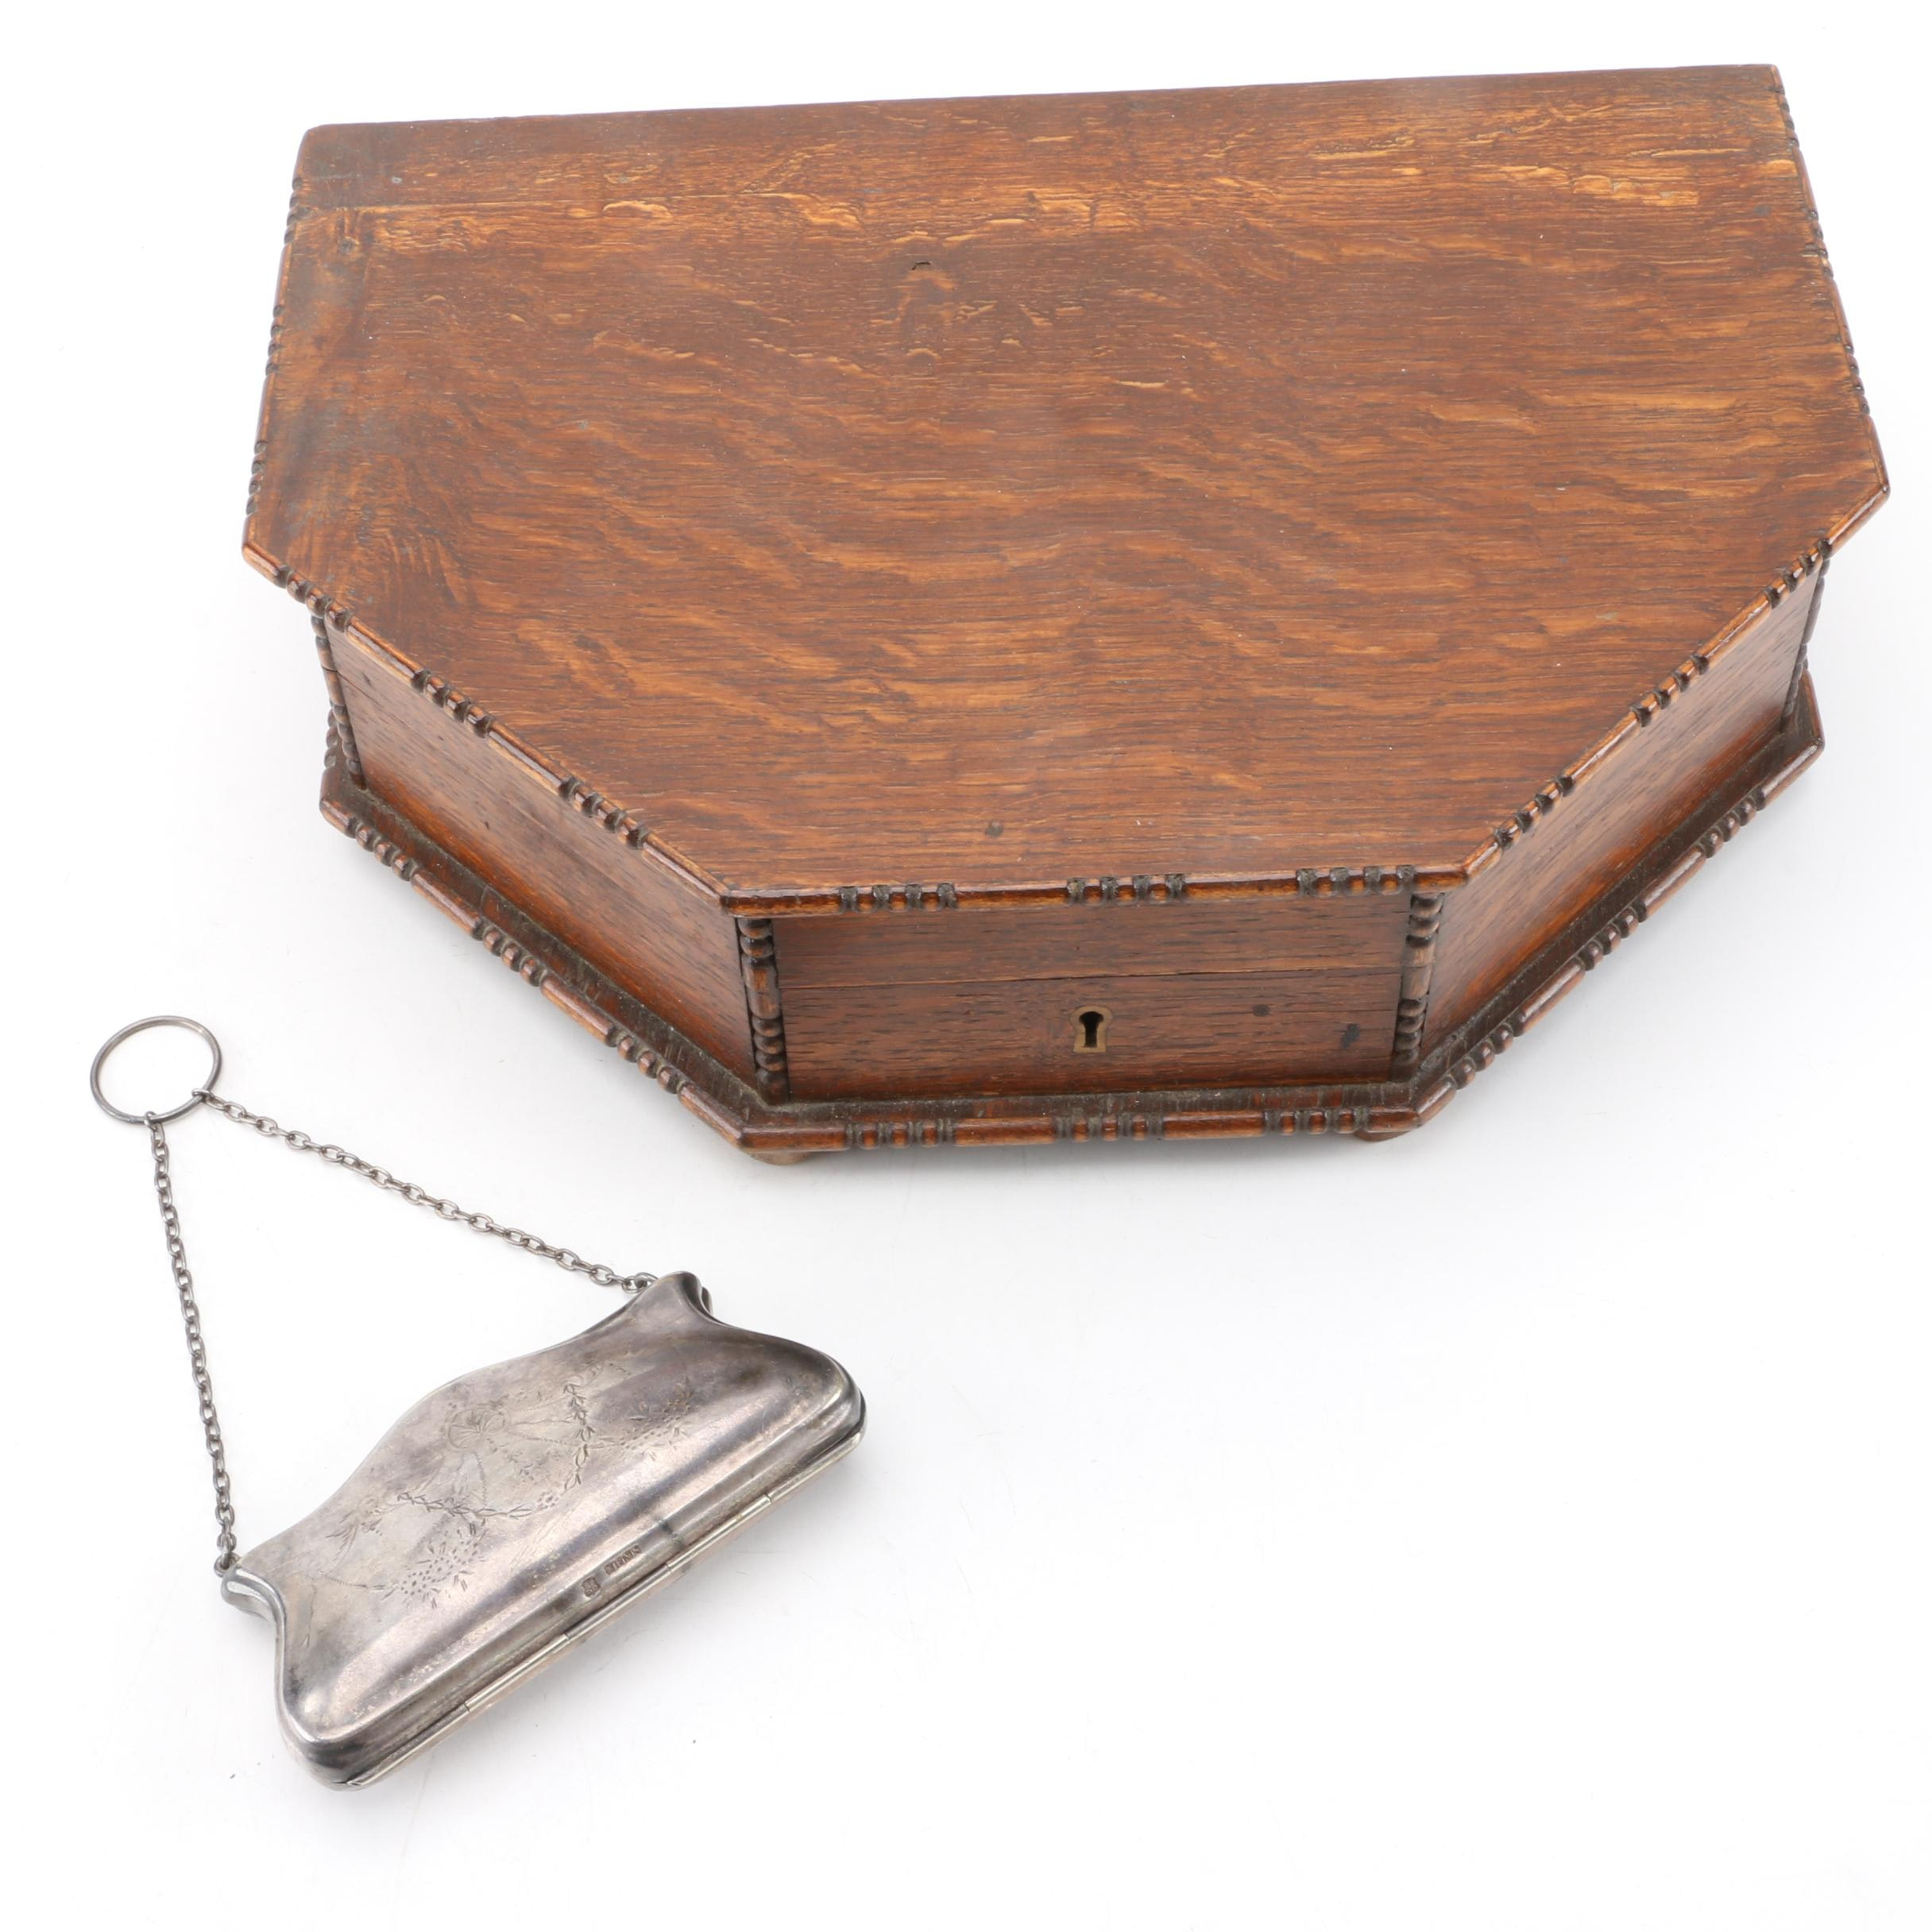 Vintage Wooden Jewelry Box with Silver-Plated Coin Purse